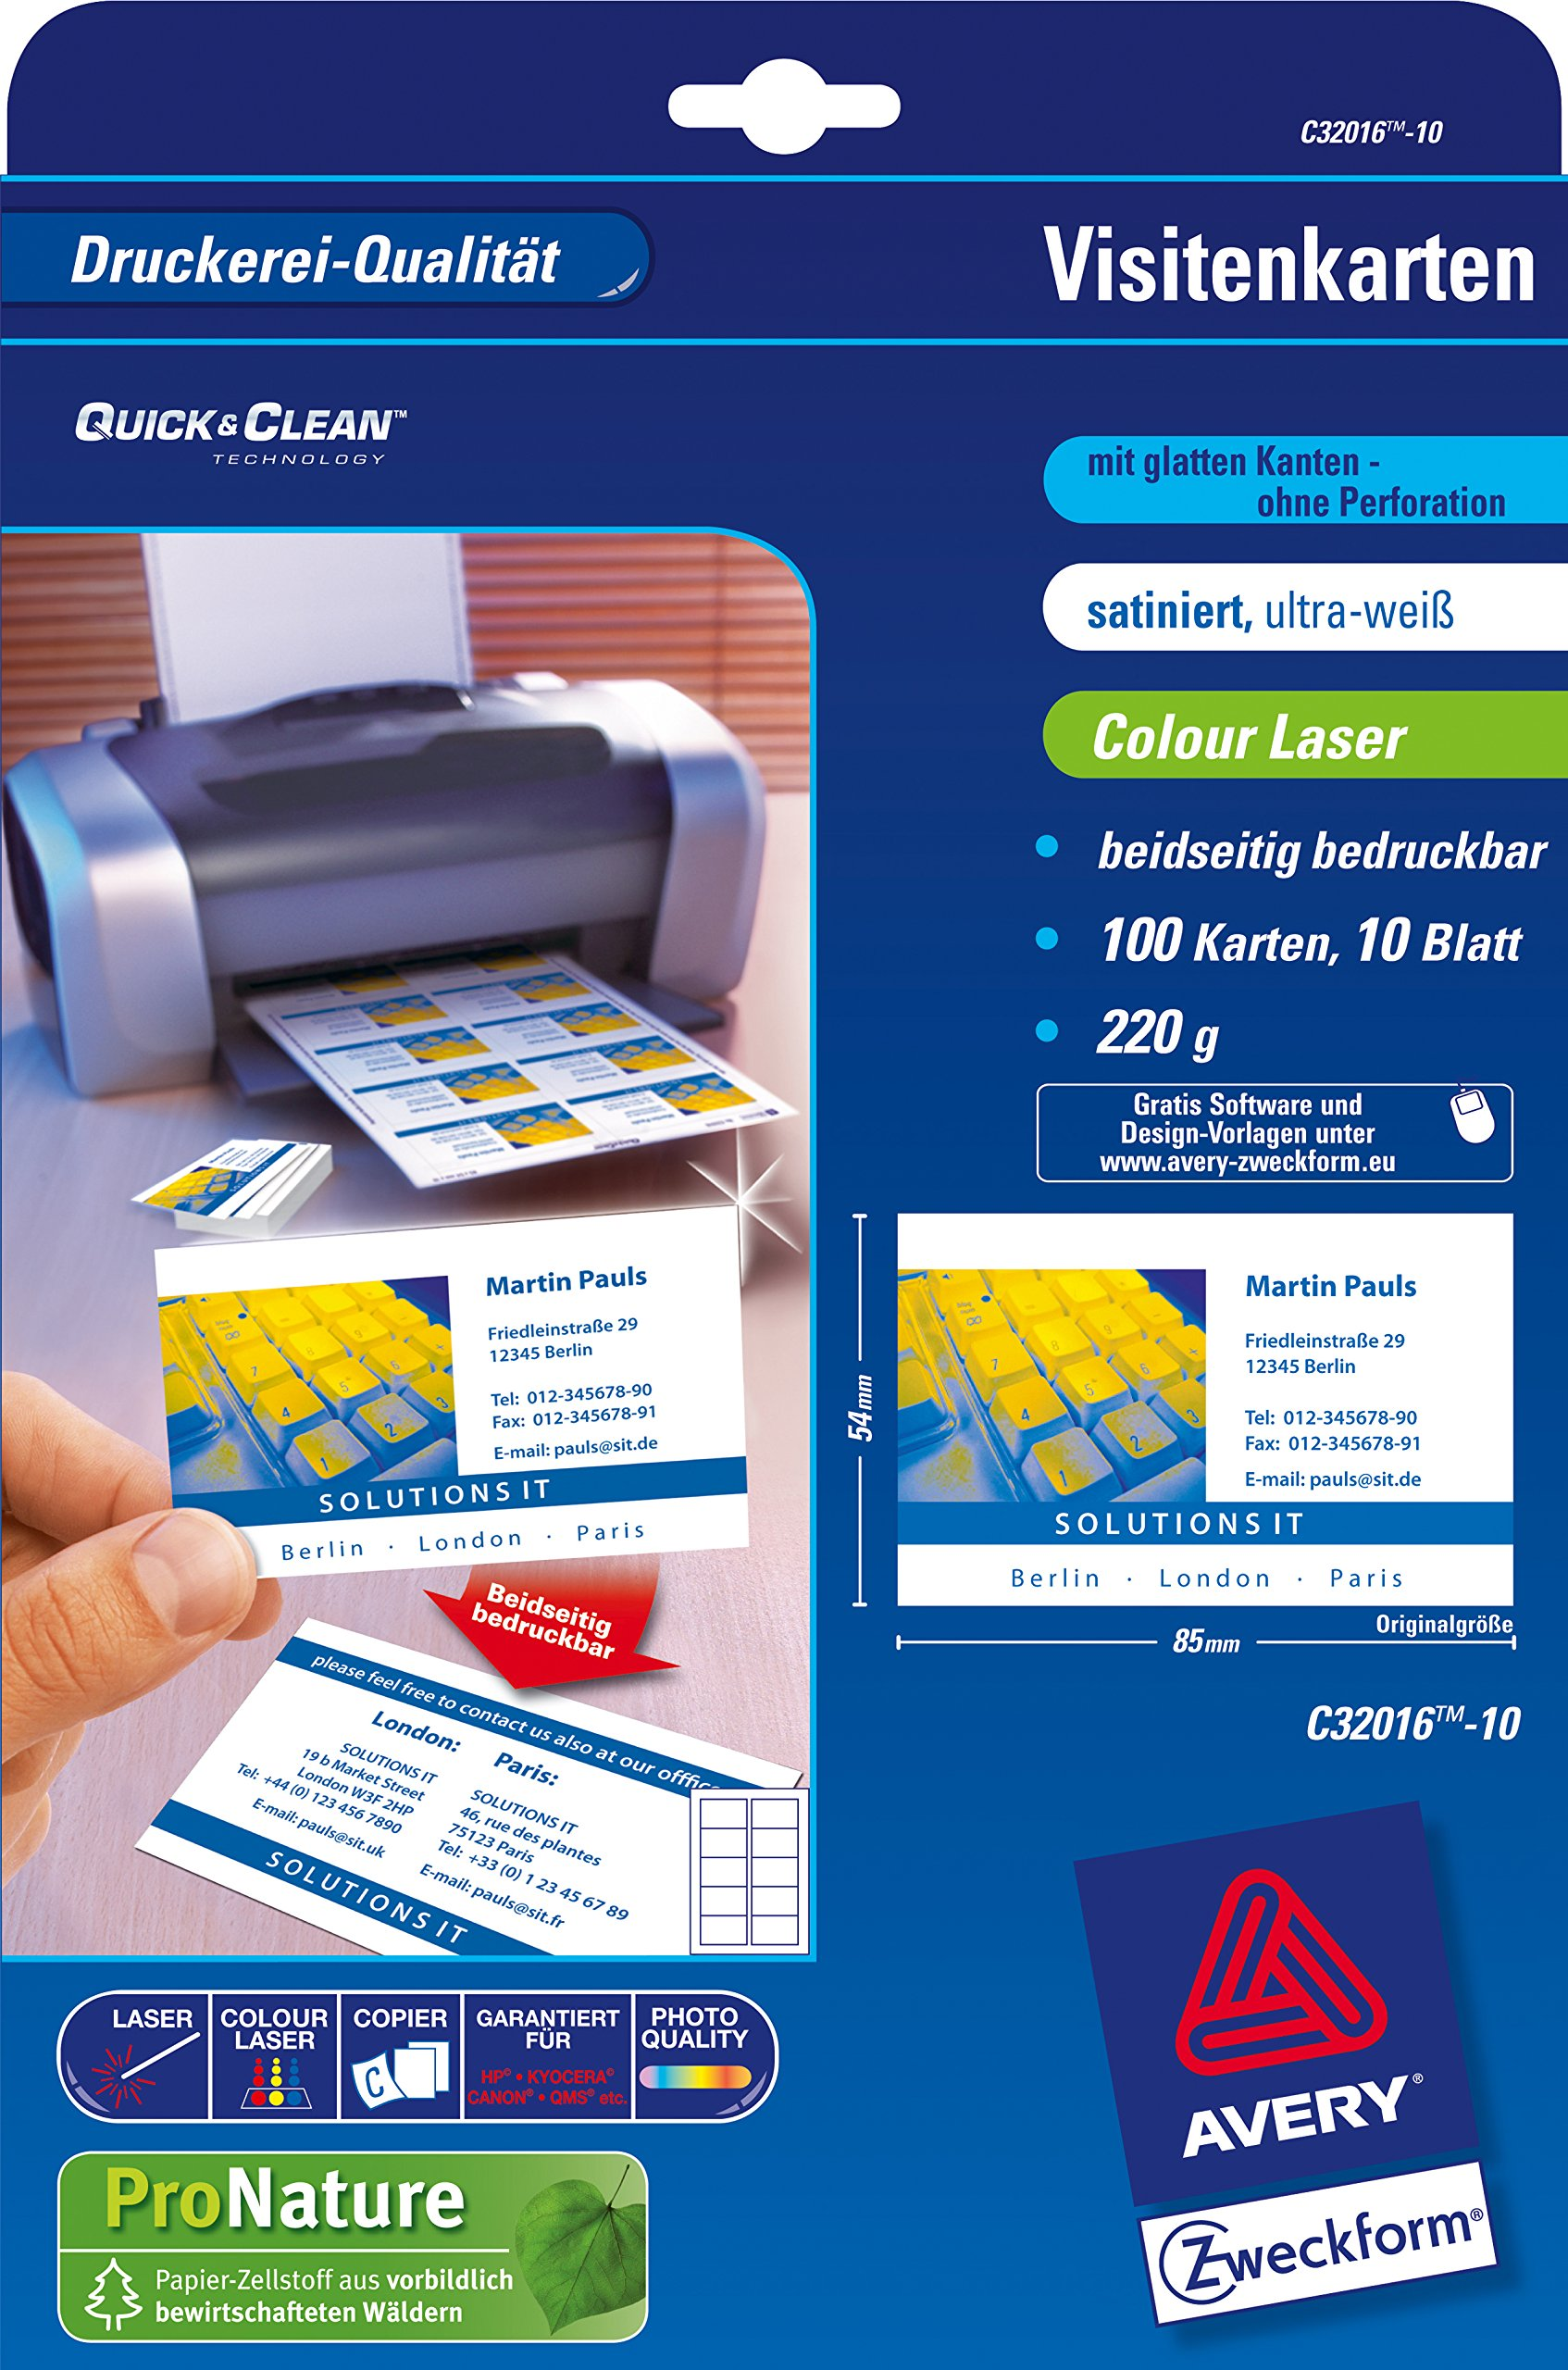 Avery Zweckform Business Cards Quick&Clean Colour Laser Surface Structure 220 g/m² DIN A4 85 x 54 mm Satined Ultra White 5000 Cards 500 Sheets